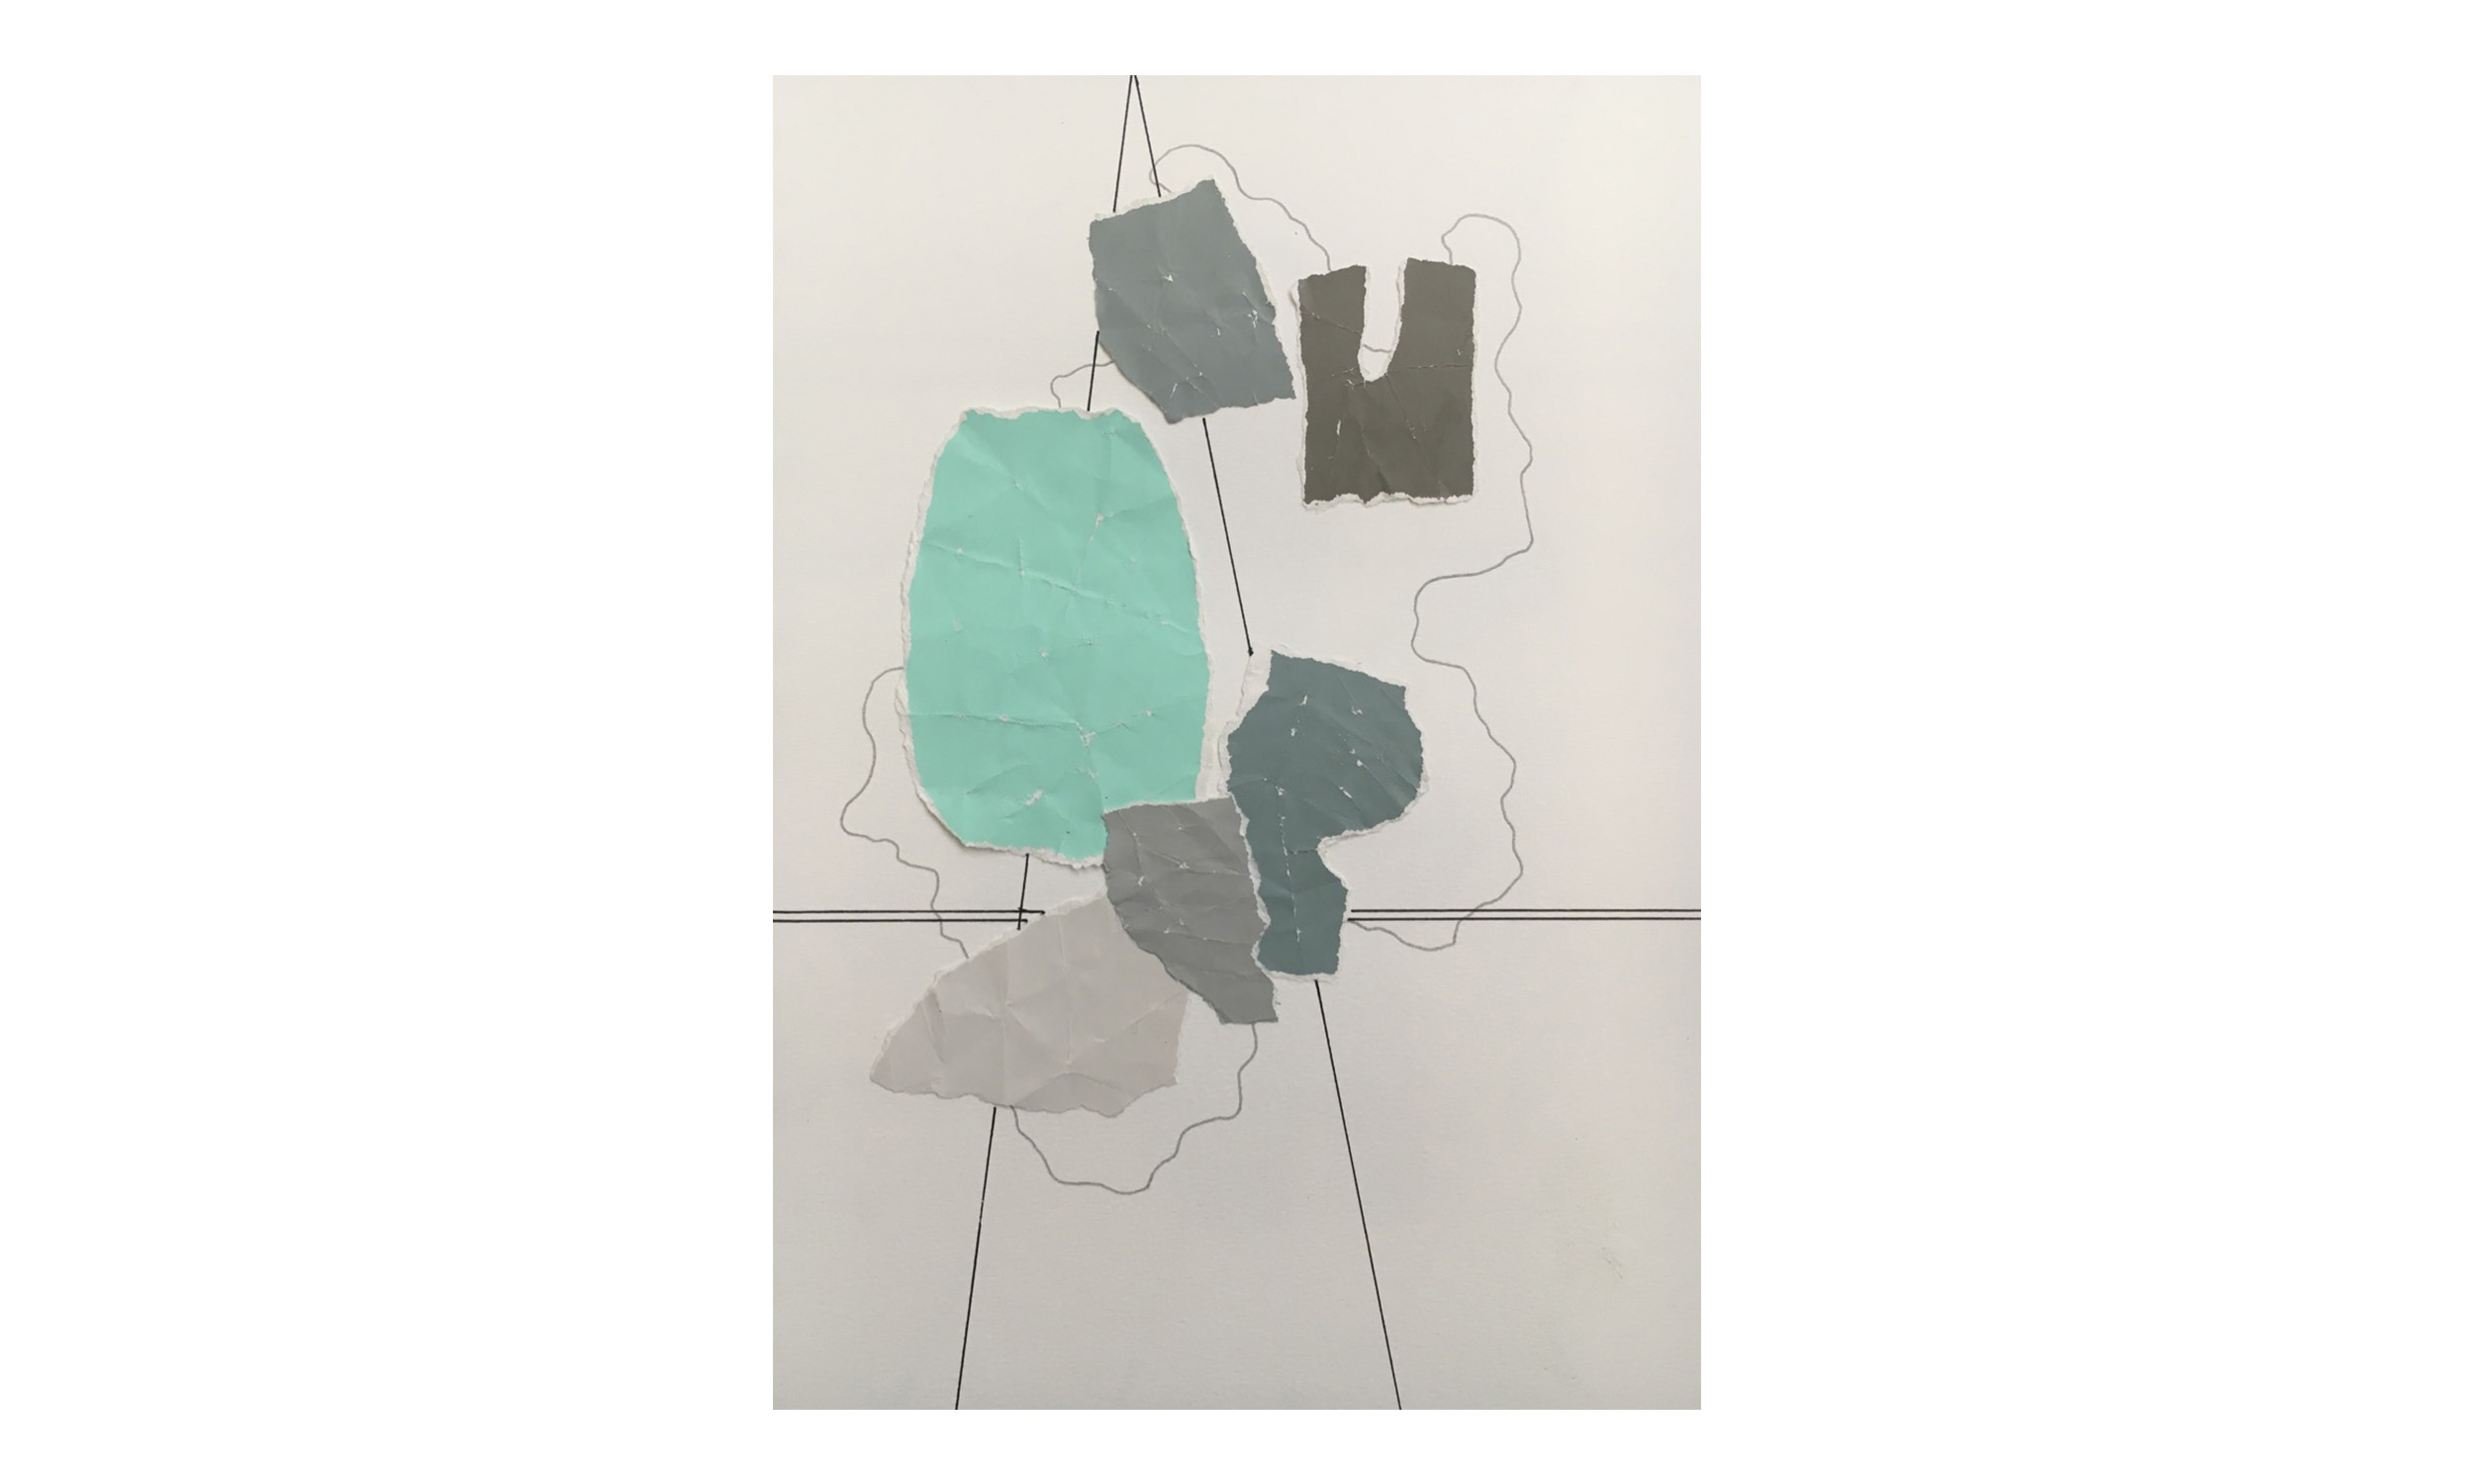 Imaginary Maps 10 , paint chips on paper, pen, pencil, powdered graphite, 11 x 14 inches, unframed, $200    Contact us for purchase